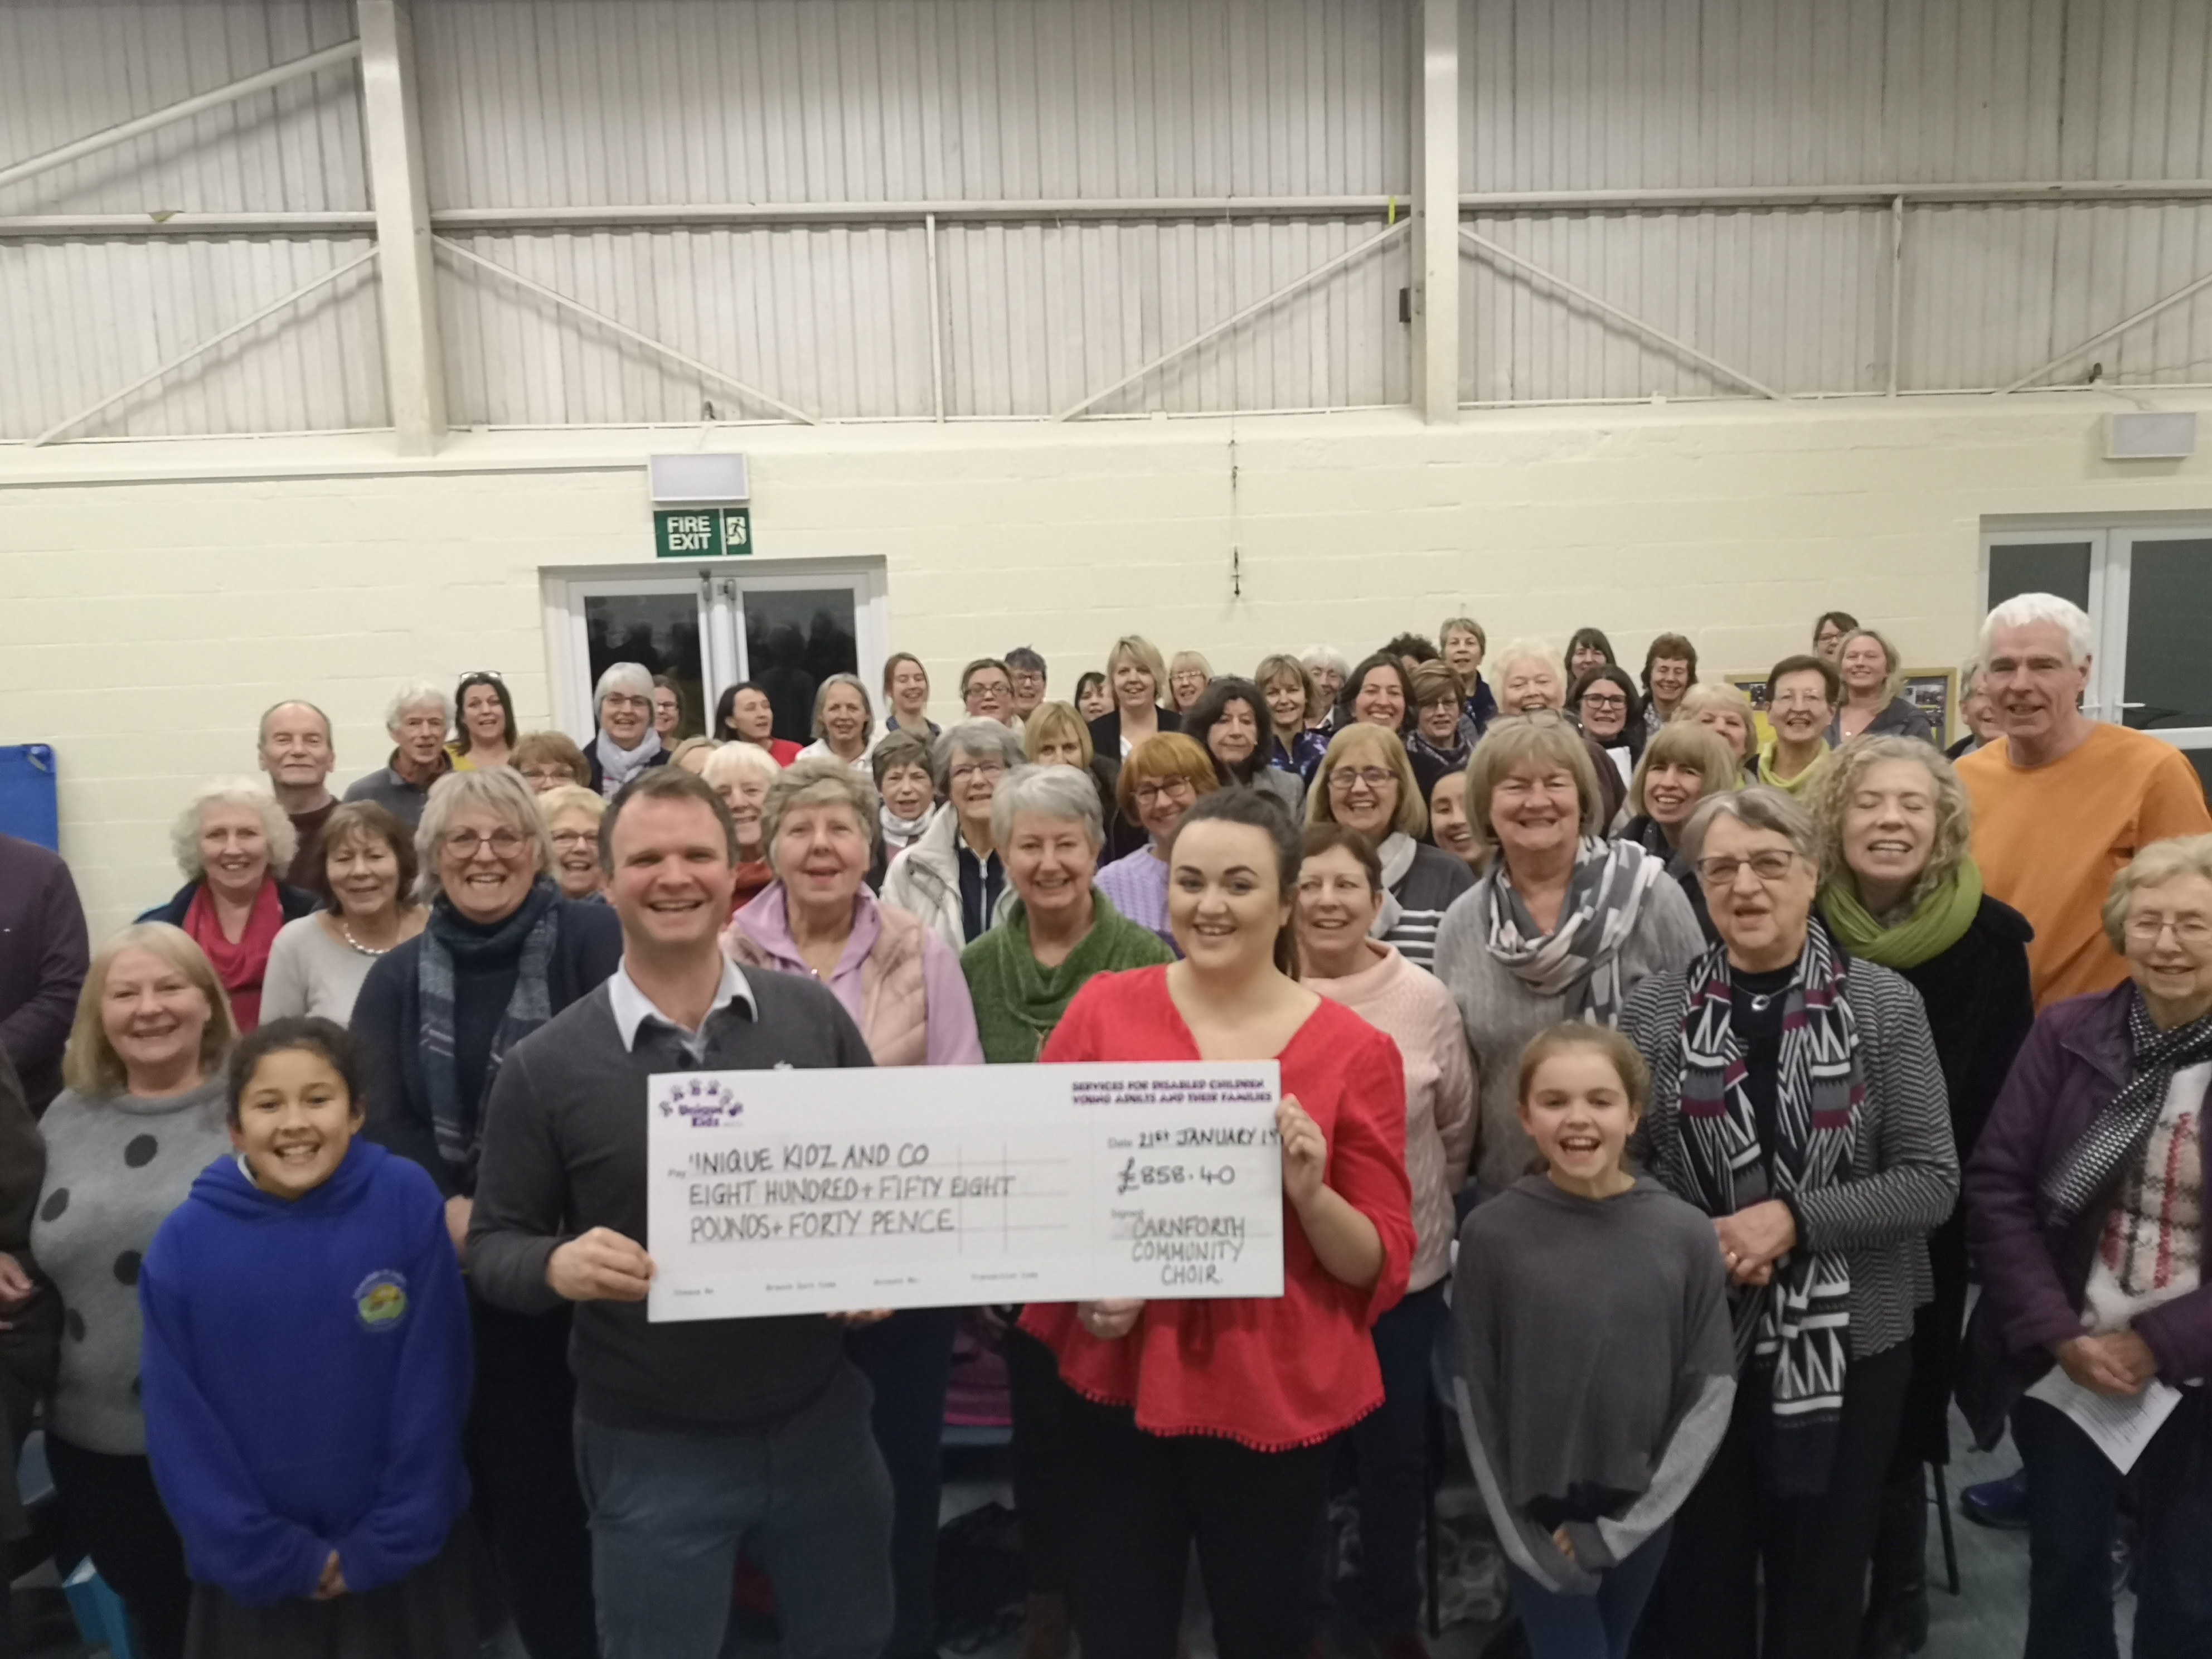 Carnforth Community Choir presenting Unique Kidz and Co with a cheque